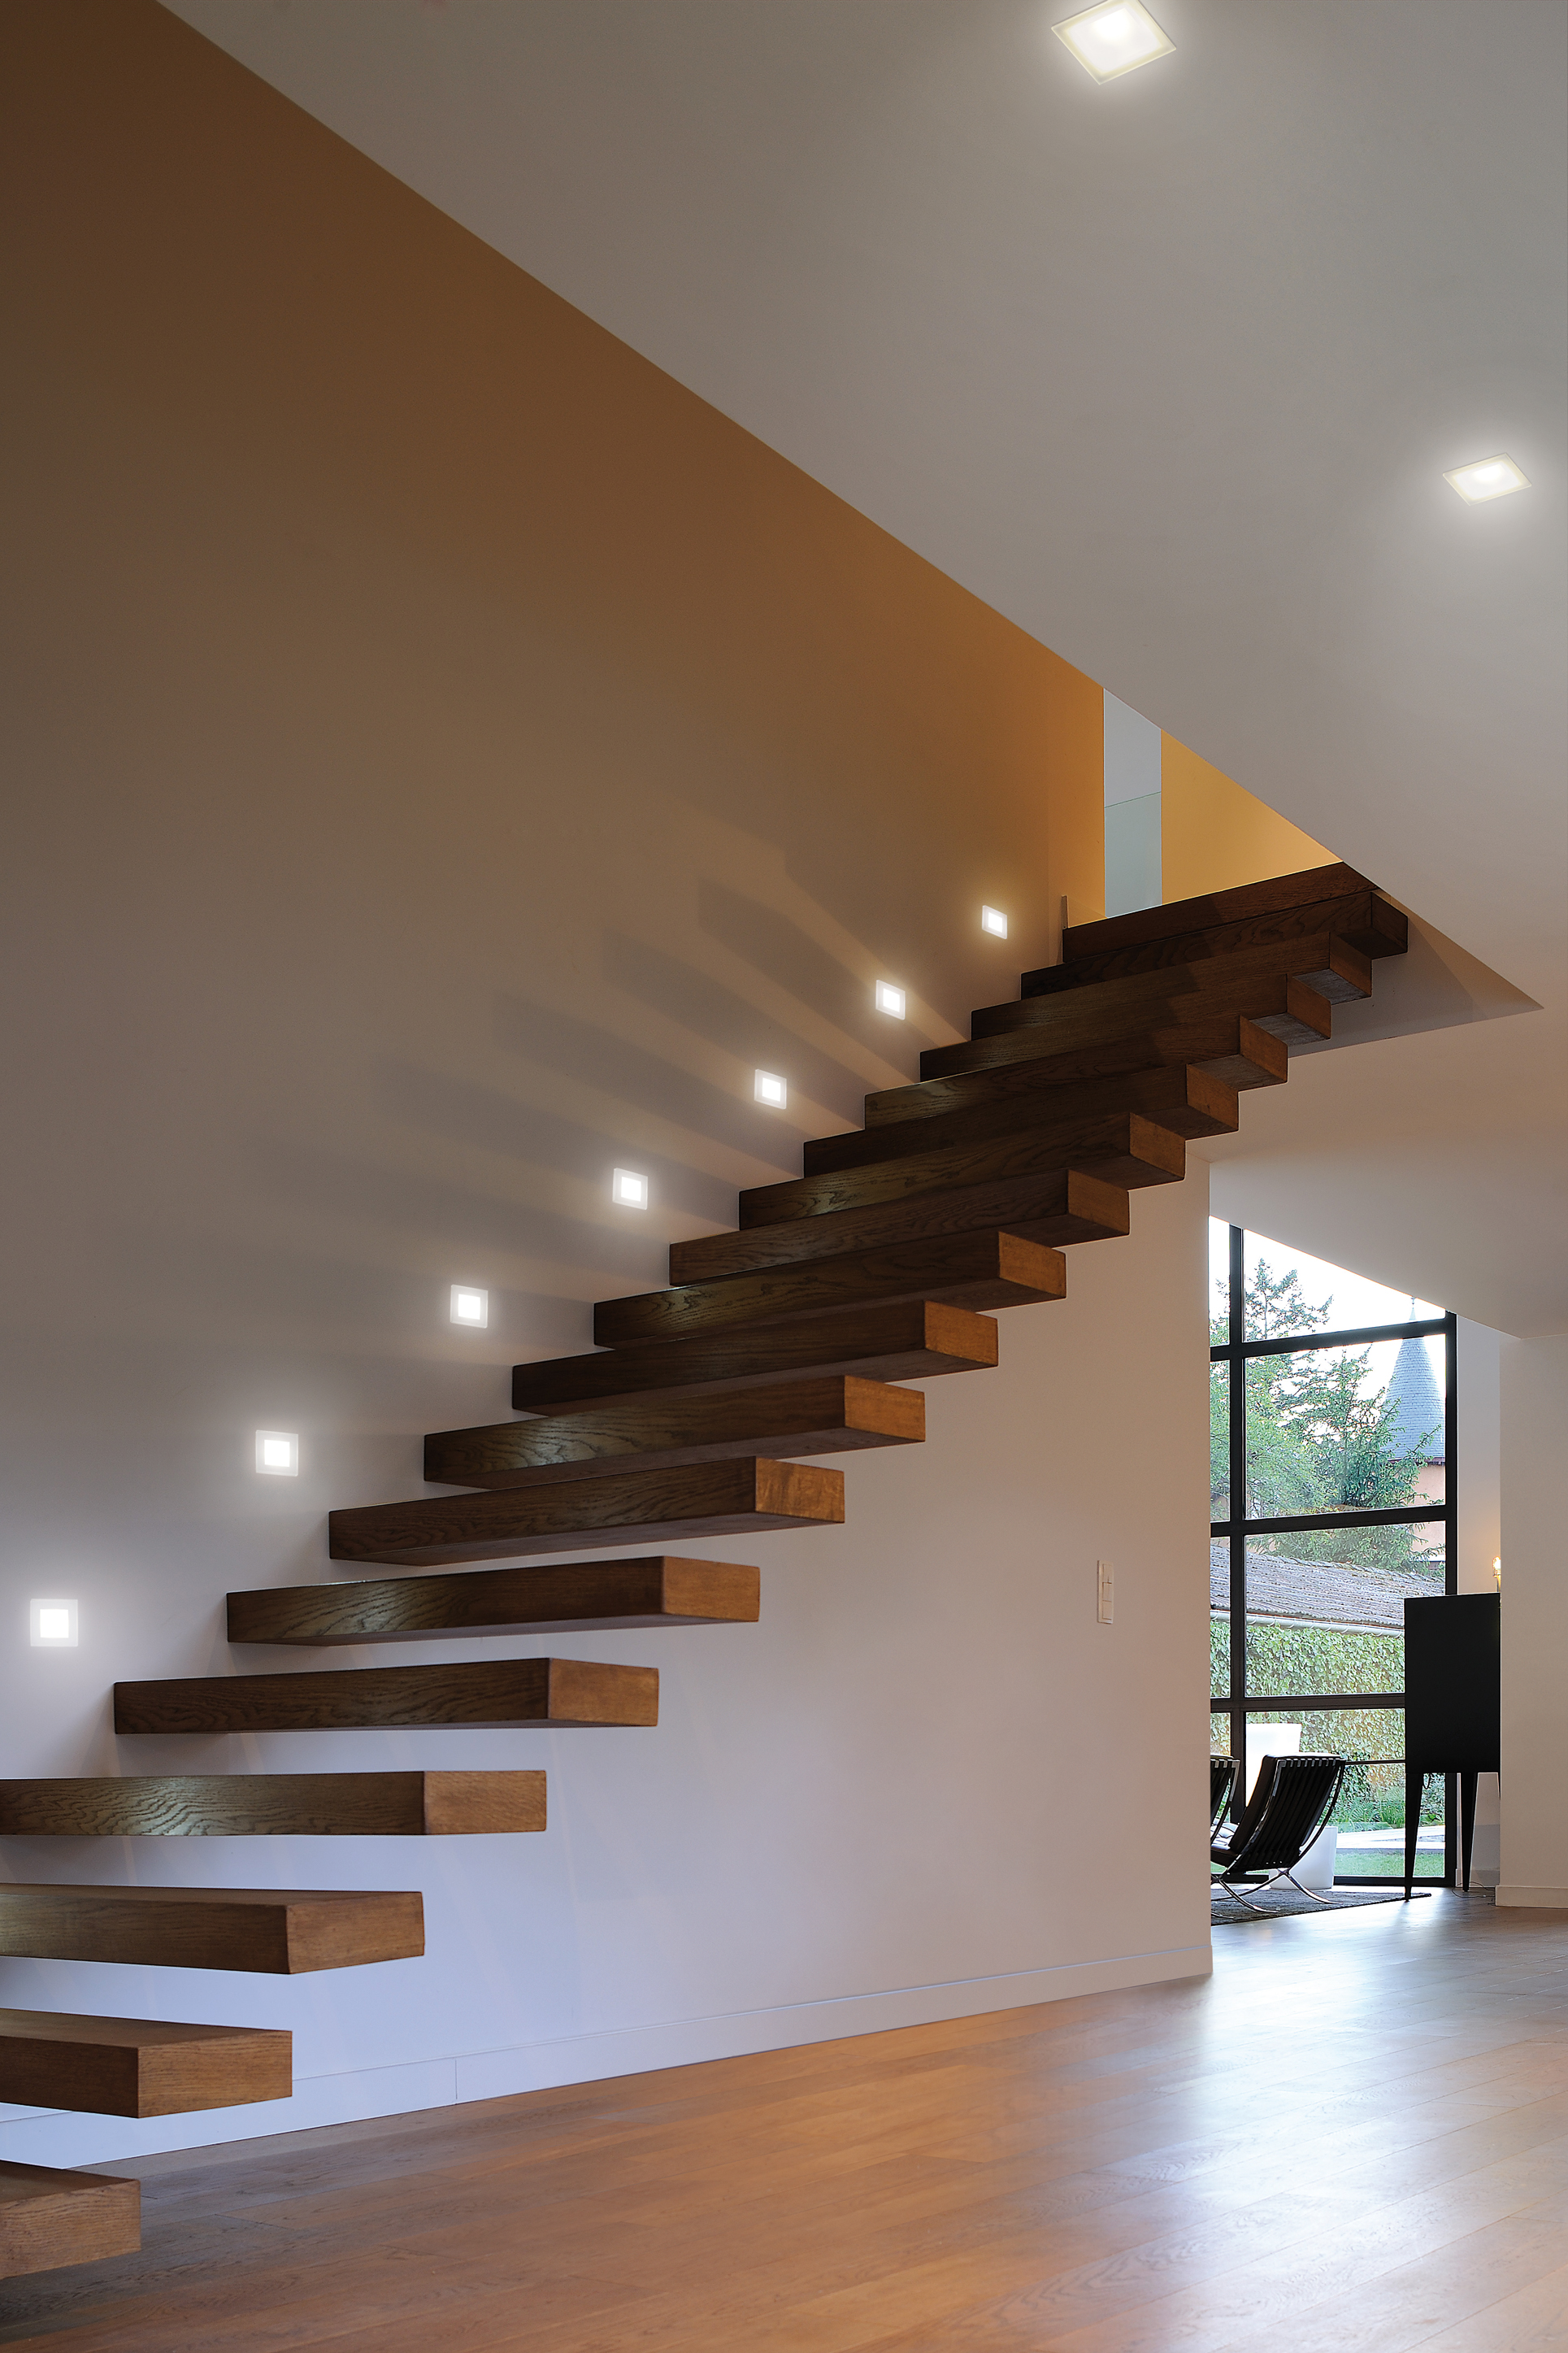 Spot da incasso a led luce e design for Luci a led per interni casa